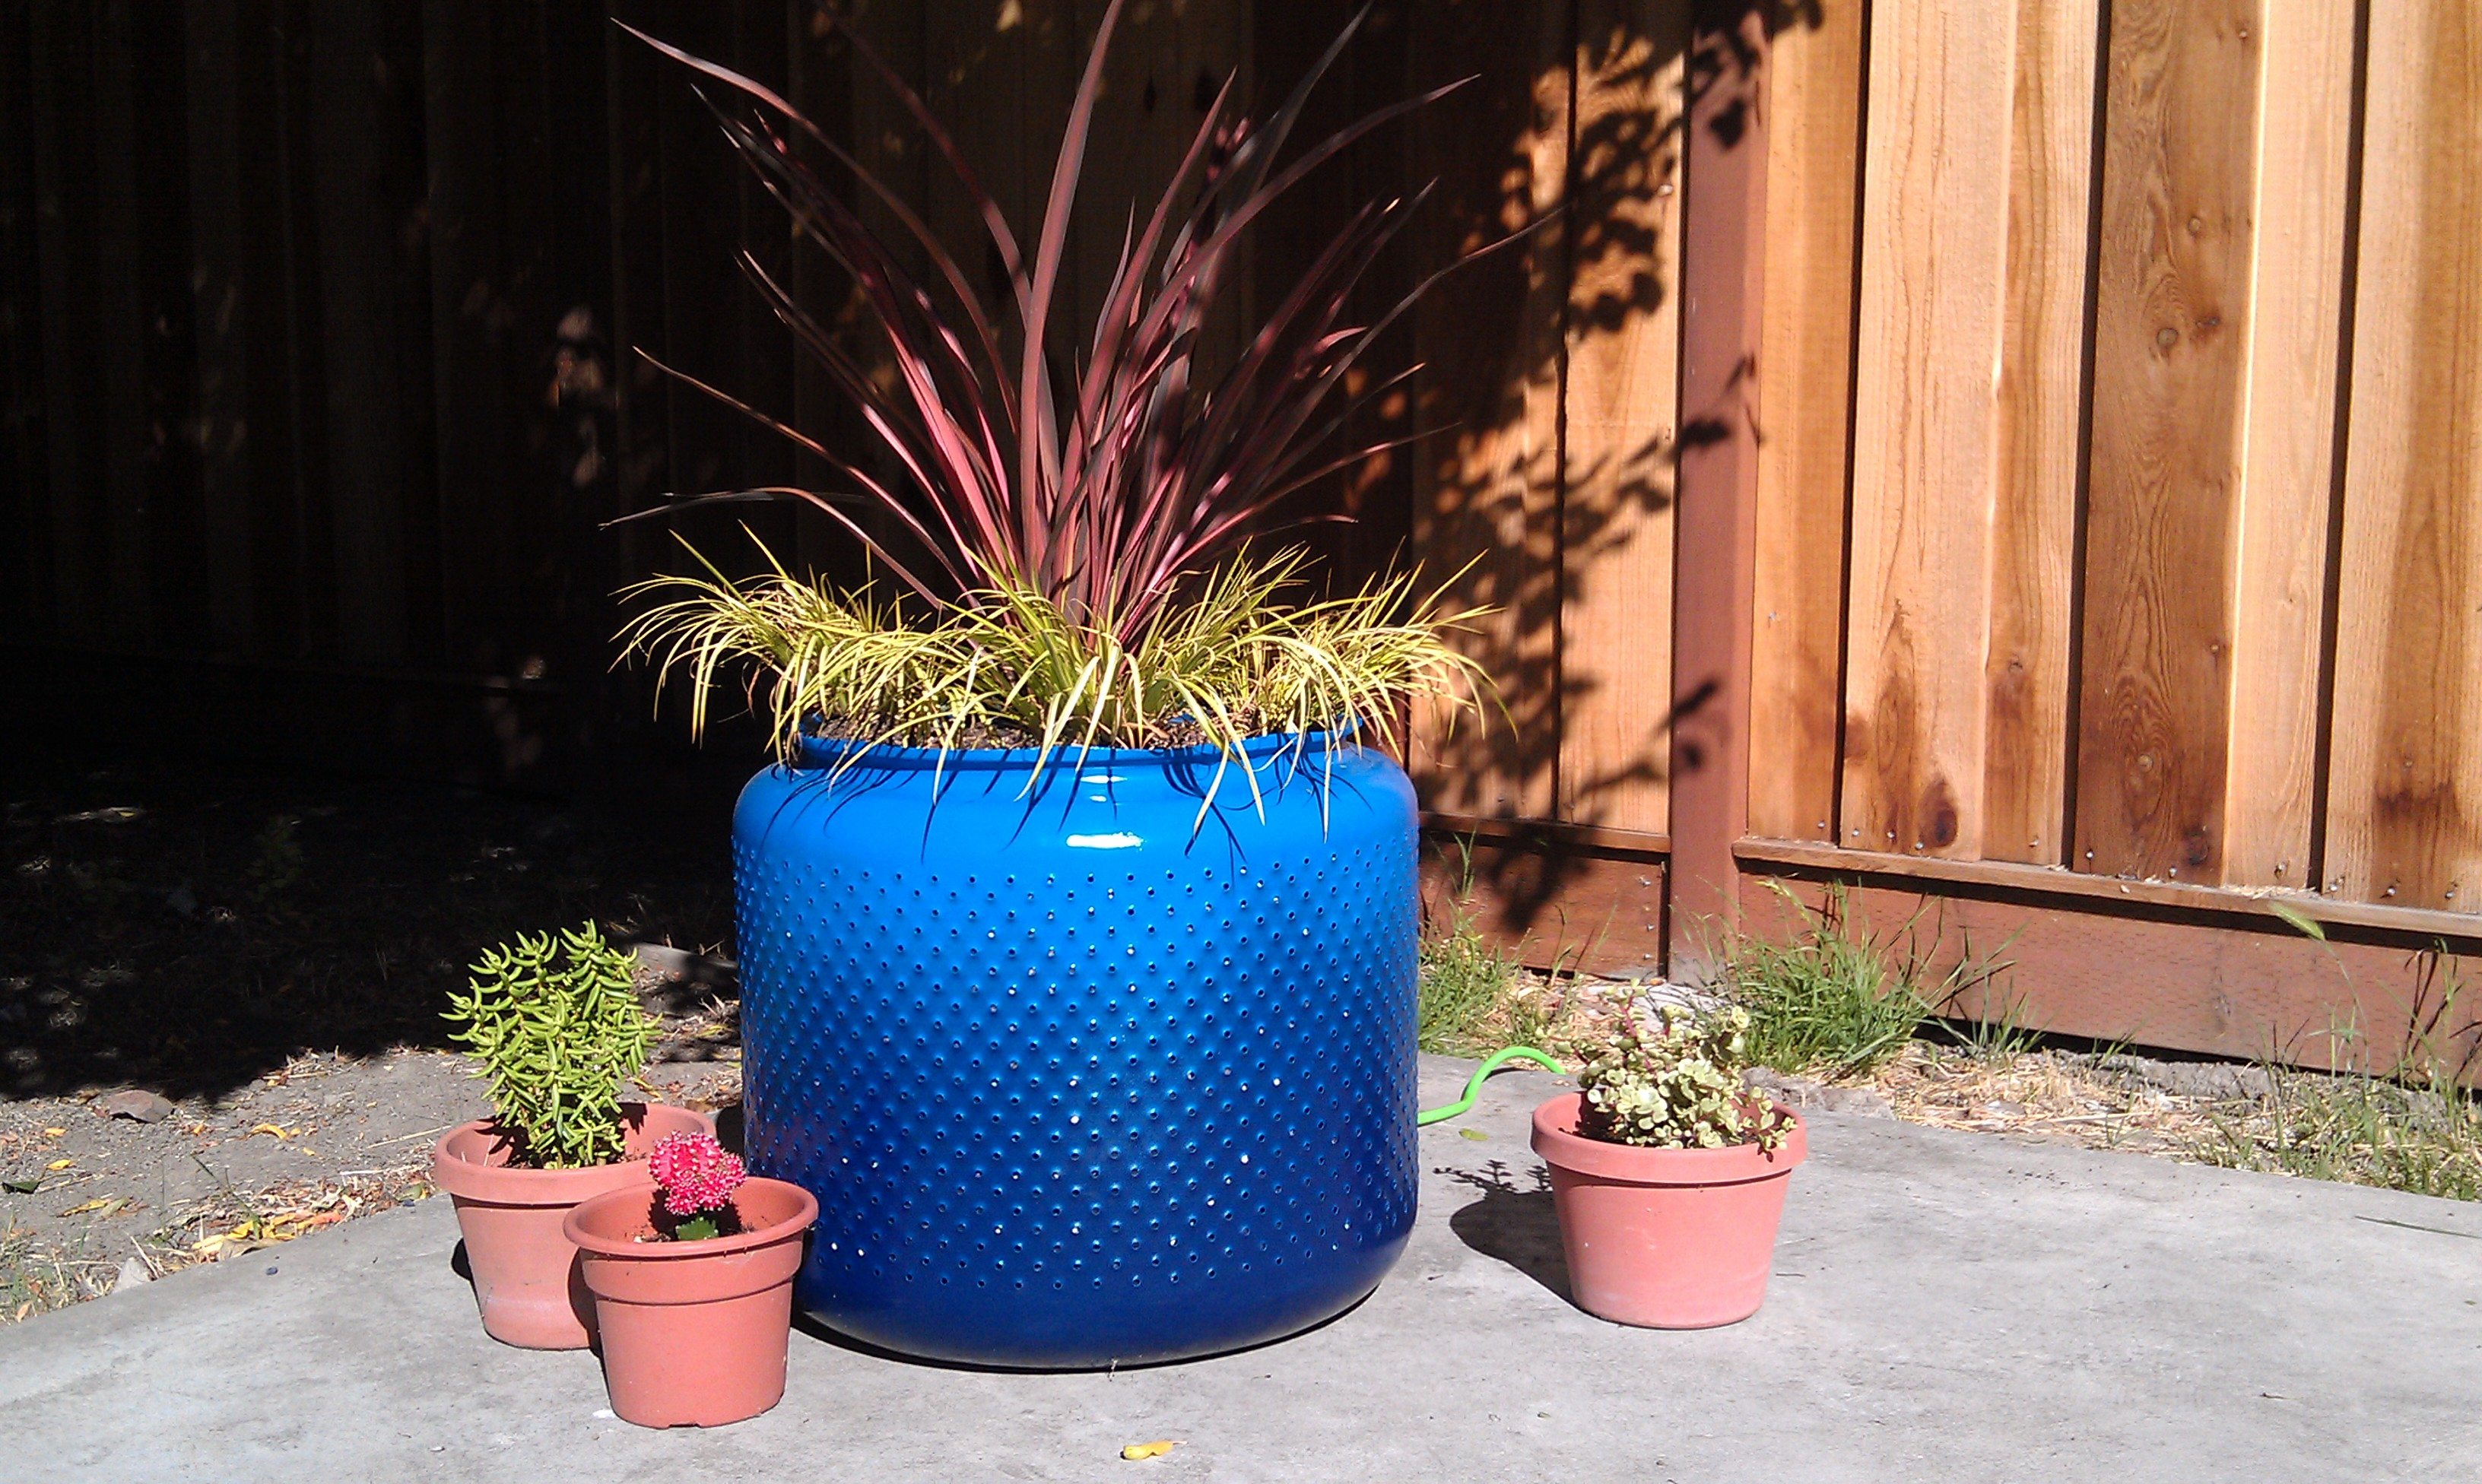 Picture of Custom Potted Plant From TechShop